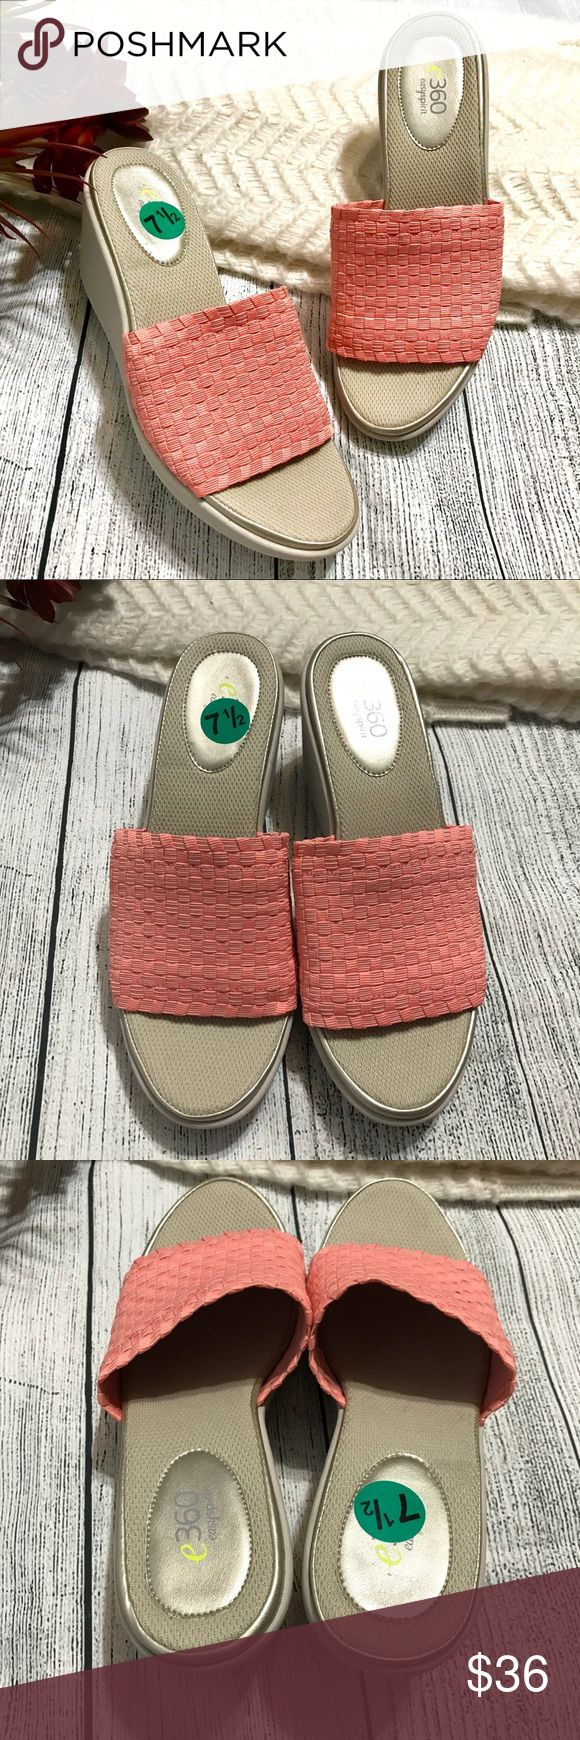 "Easy Spirit Harvey Peach Slip-on Wedge Sandals New Easy Spirit Harvey Peach Slip-on Wedge Sandals New  New without box; Heel ht. 3"" Sz 7.5M Textile Upper  Textile lining  Balance Manmade  Item#RMW040909 Easy Spirit Shoes Sandals"